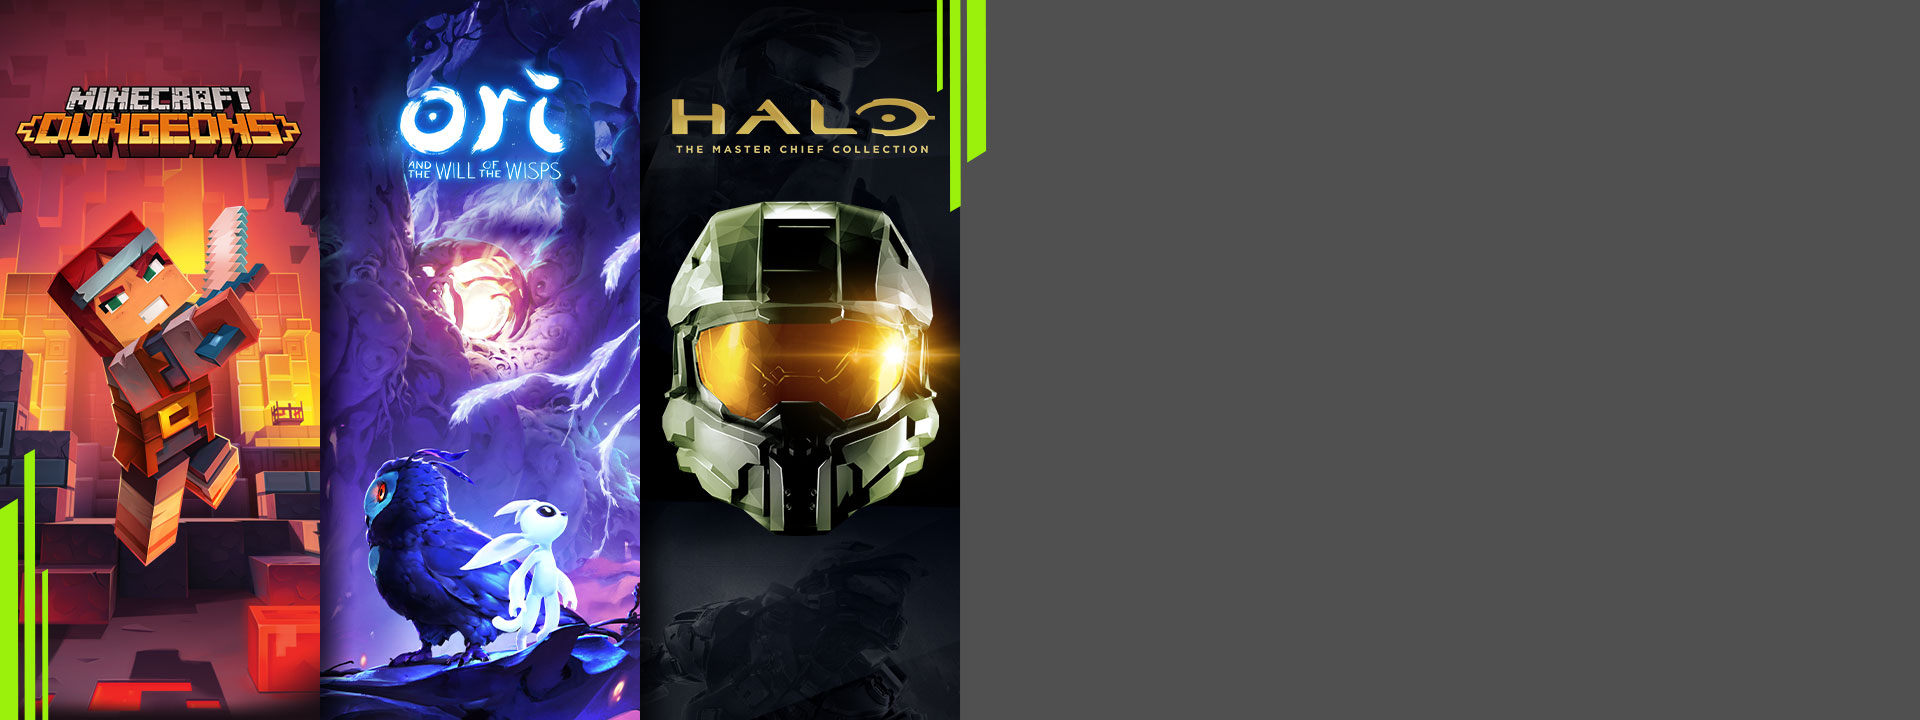 Drei Felder mit Minecraft Dungeons, Ori and the Will of the Wisps und Halo: The Master Chief Collection